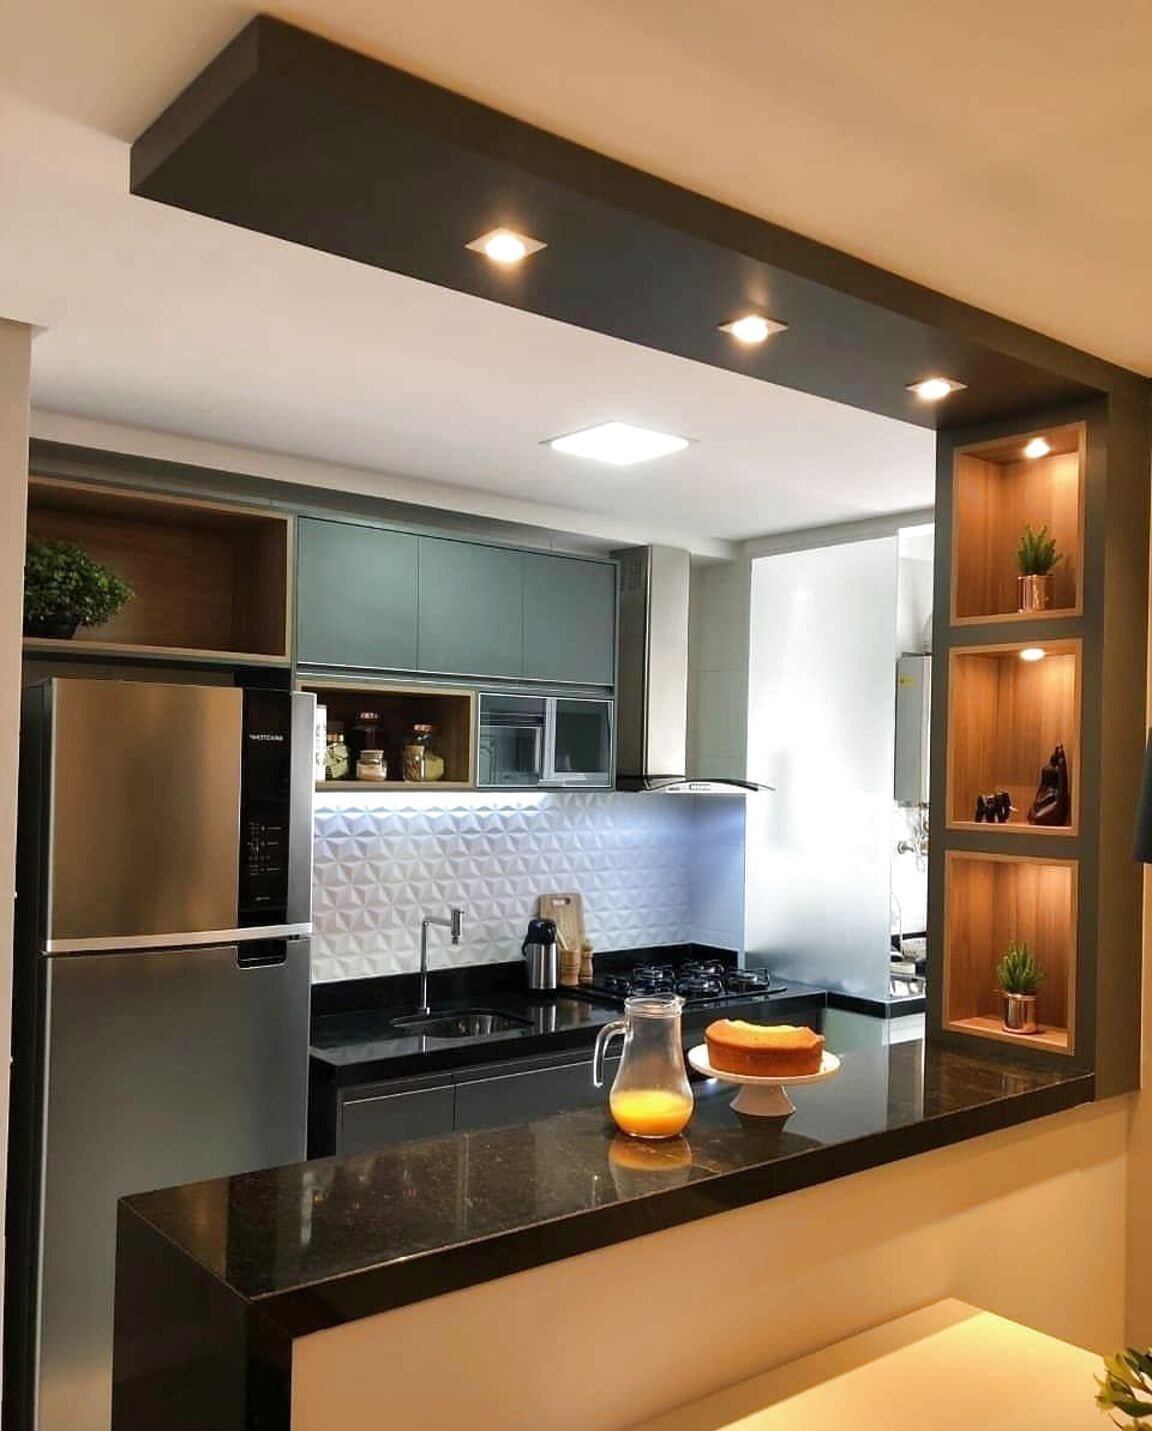 20+ Inspiring Kitchen Remodeling Ideas, Costs, & Trends In 2020